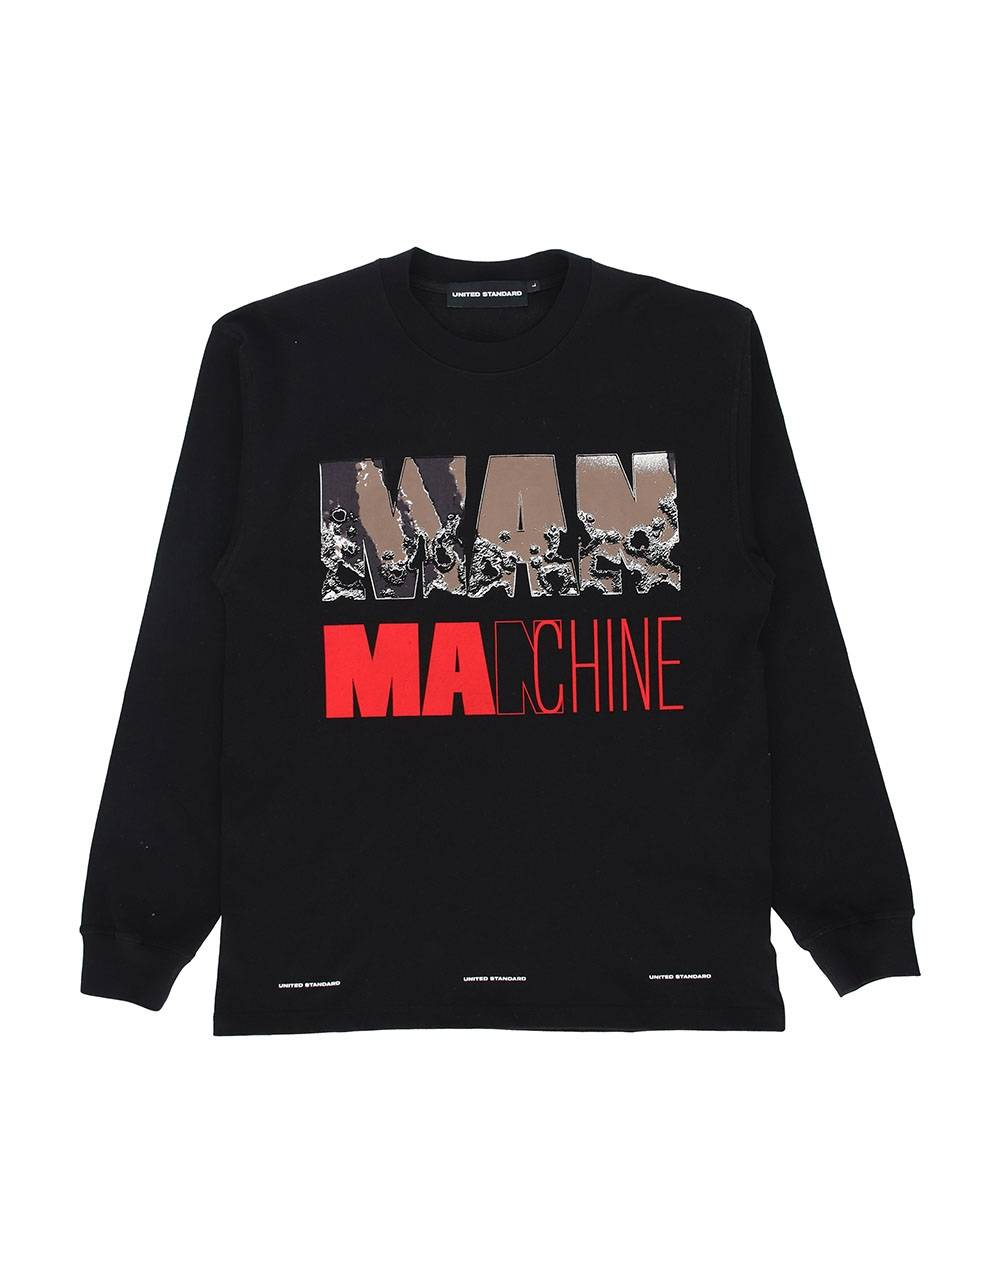 United Standard manchine longsleeve - black United Standard T-shirt 86,07 €